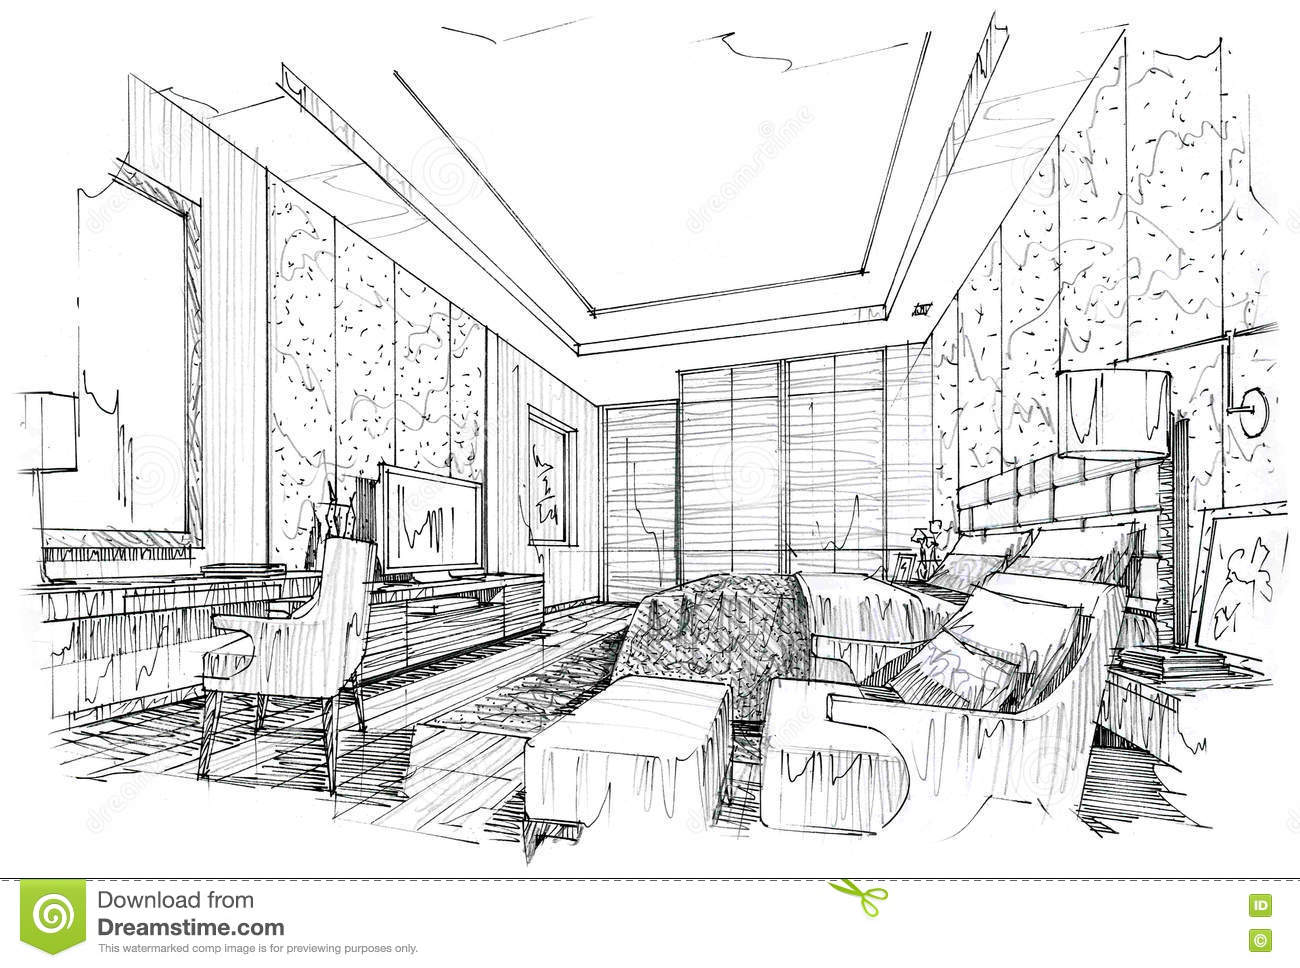 Bedroom drawing perspective - Sketch Interior Perspective Bedroom Black And White Interior Design